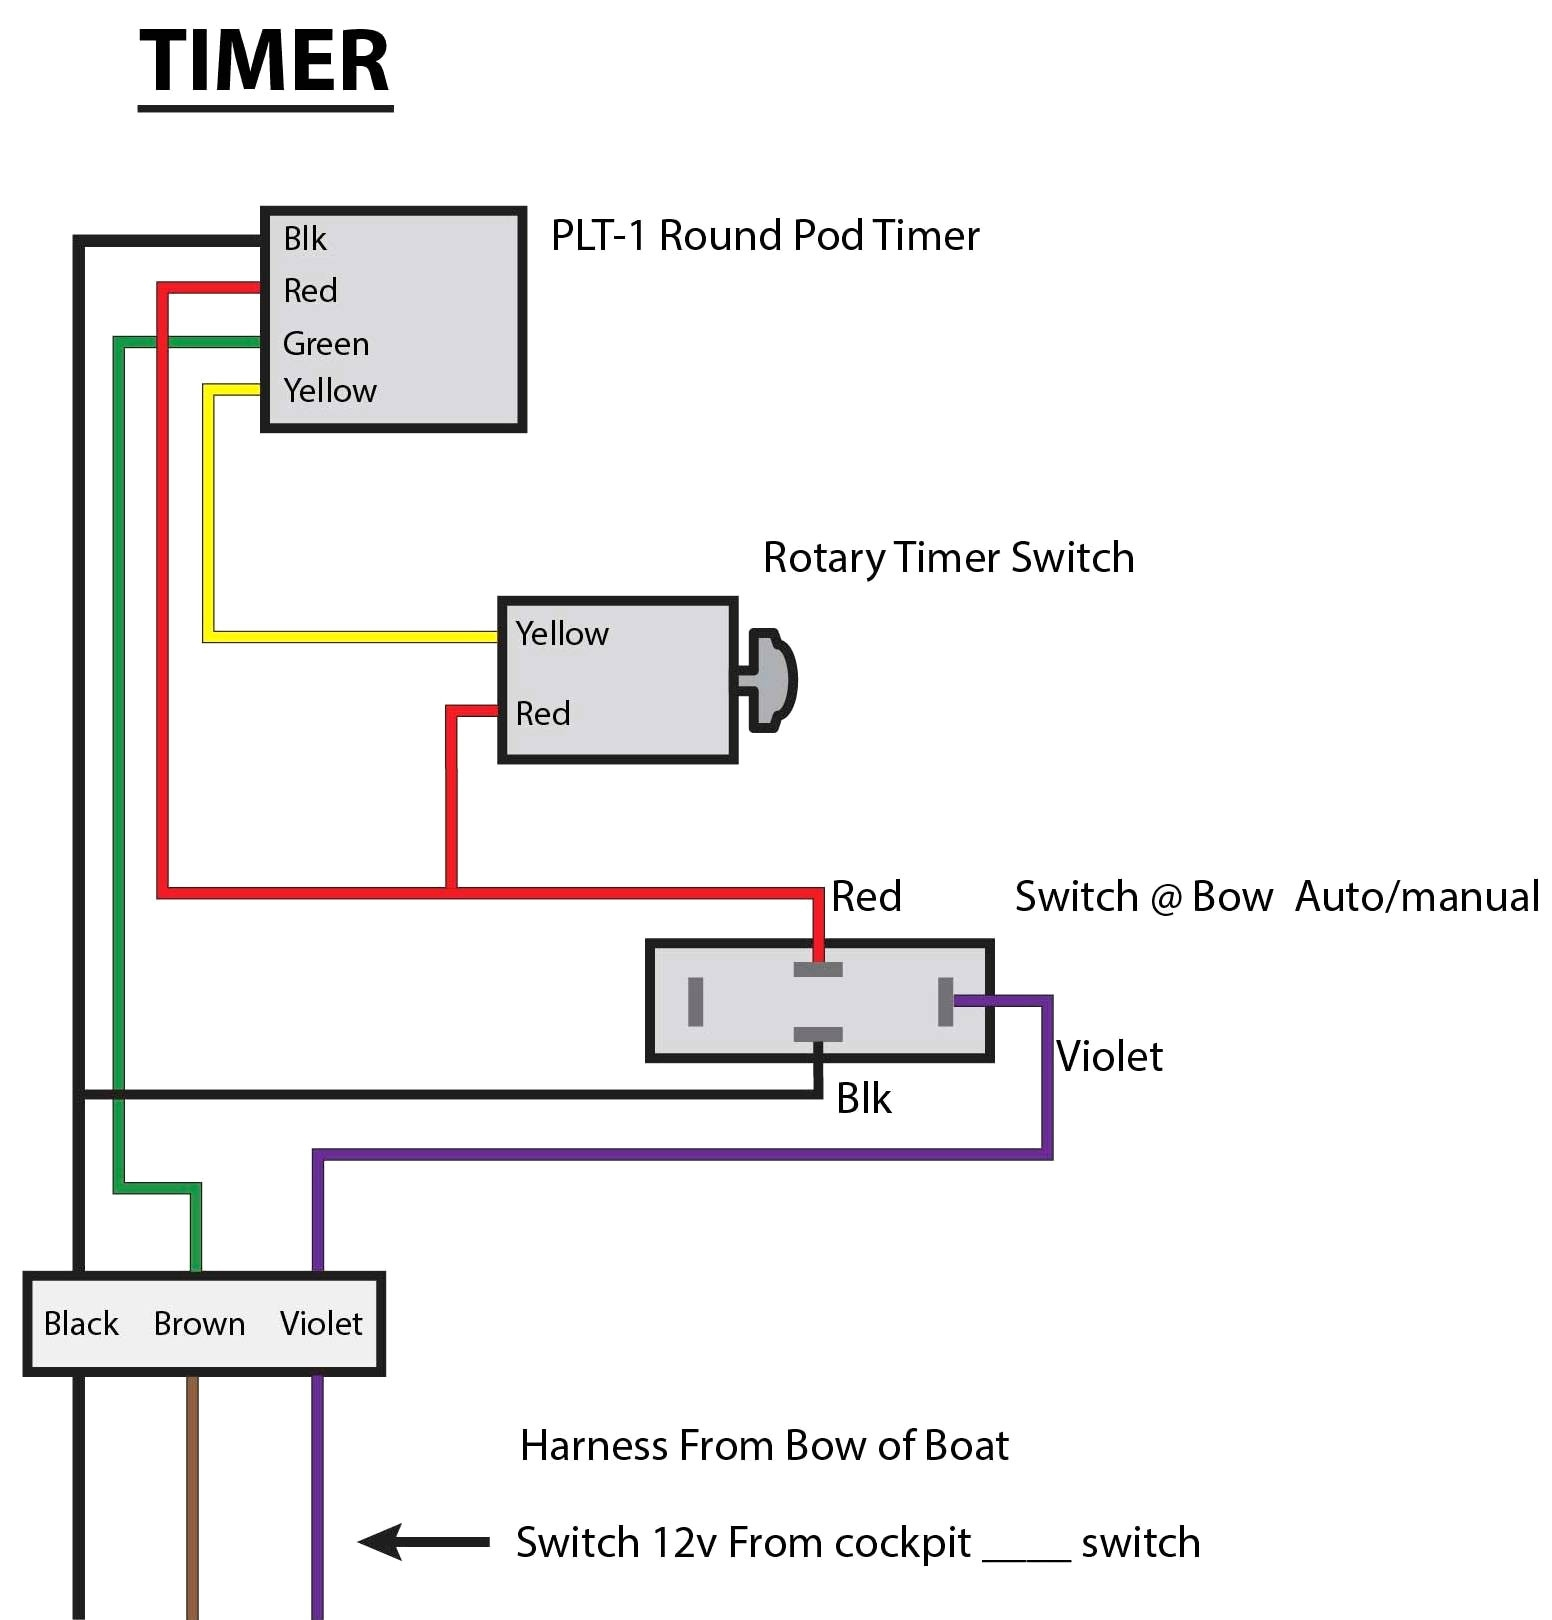 ups bypass switch wiring diagram Collection-Wiring Diagram for Ups bypass Switch New Rotary Switch Wiring Diagram Ge Cr115e Auto Electrical Wiring 2-m